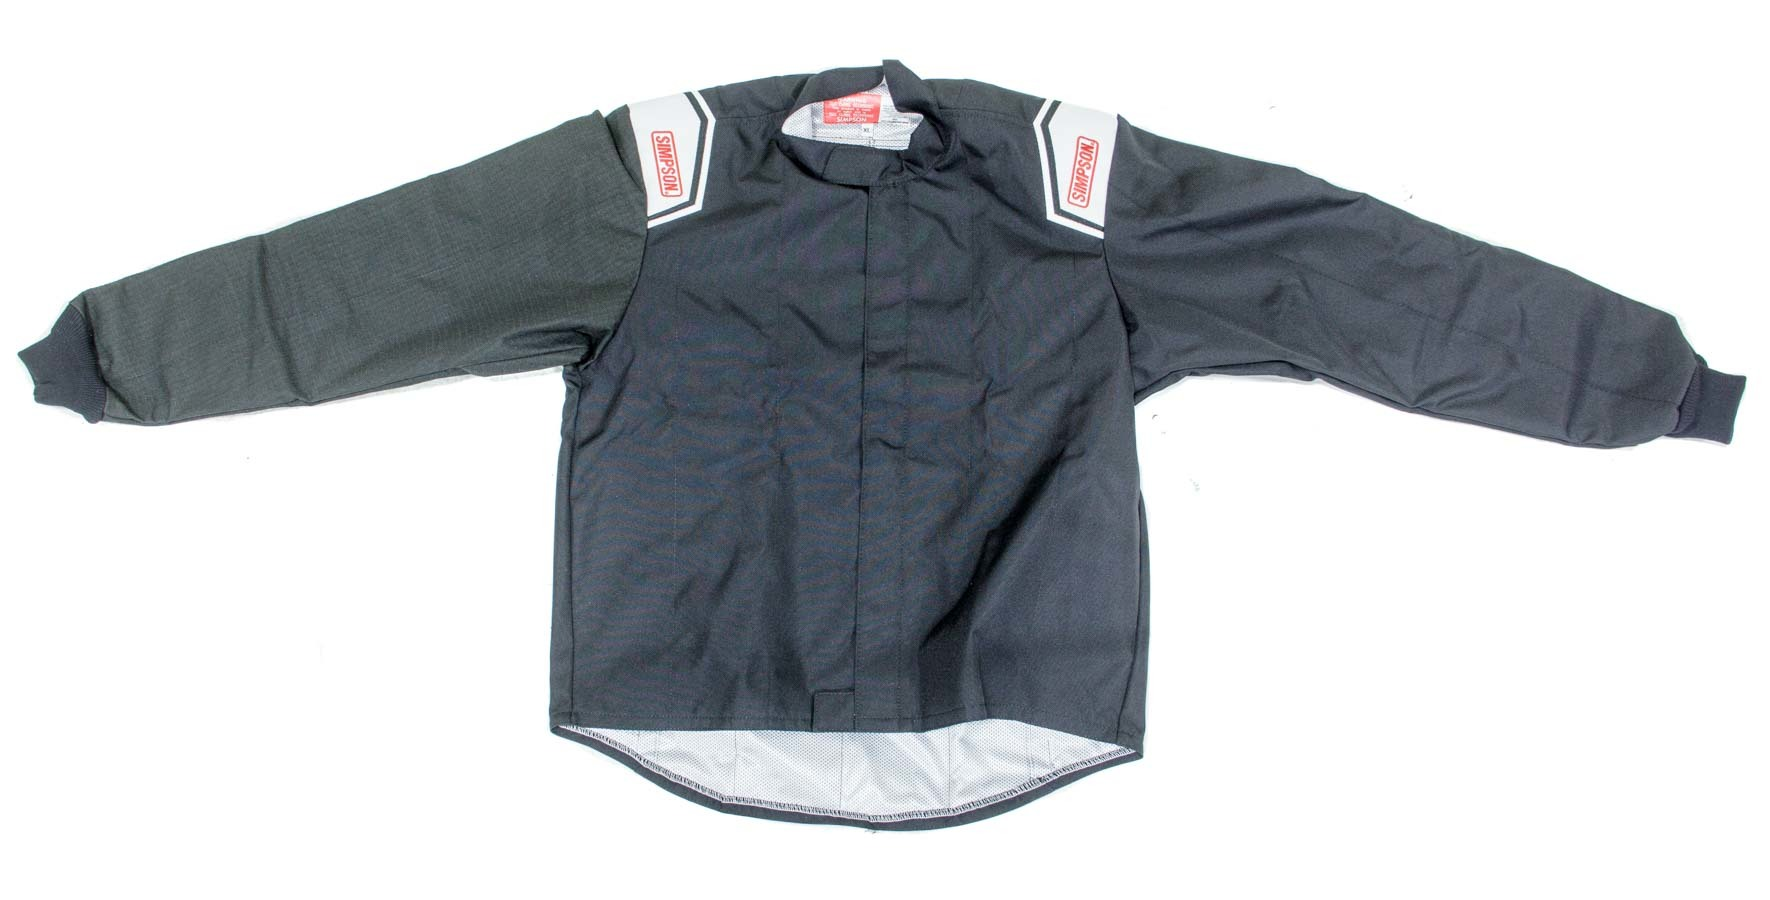 Simpson 0102382 Jacket, Driving, Apex Kart, Carbon X Sleeve, Black, Large, Each